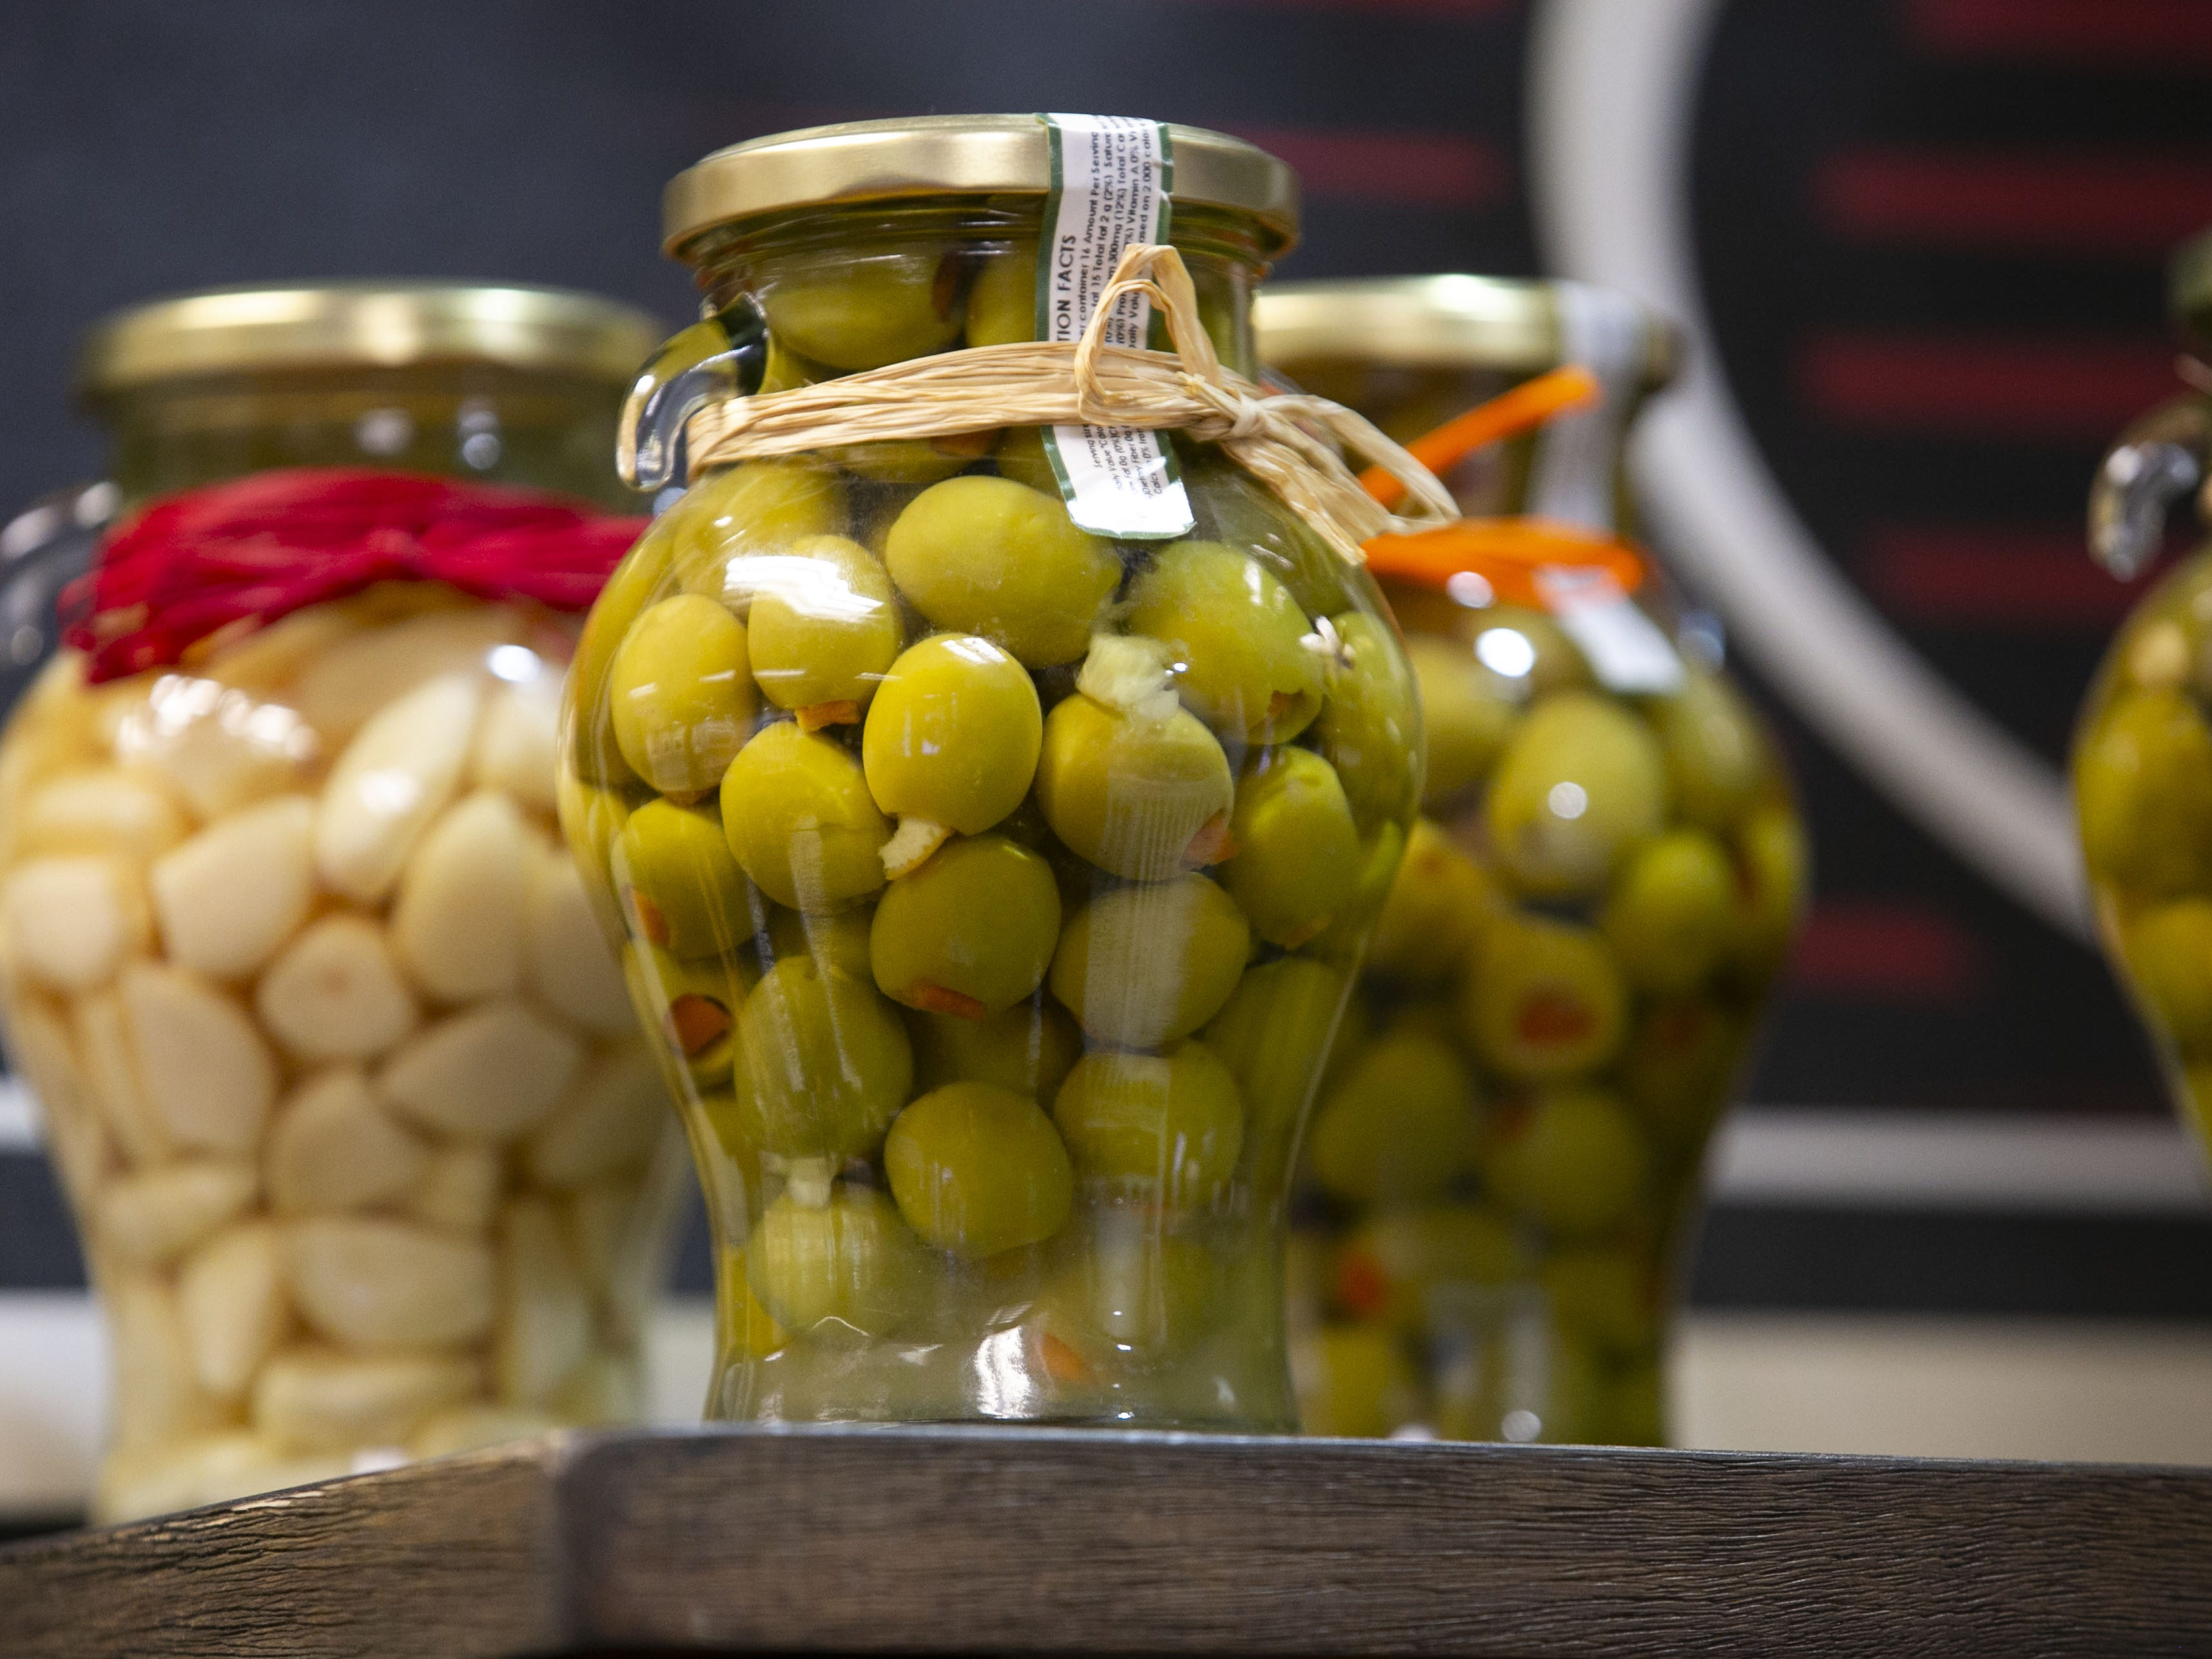 Olives at Outrageous Olive Oils & Vinegars in Old Town Scottsdale on Tuesday, Dec. 11, 2018. The shop is owned by former child actor, Frankie Muniz and his fiance Paige Price.